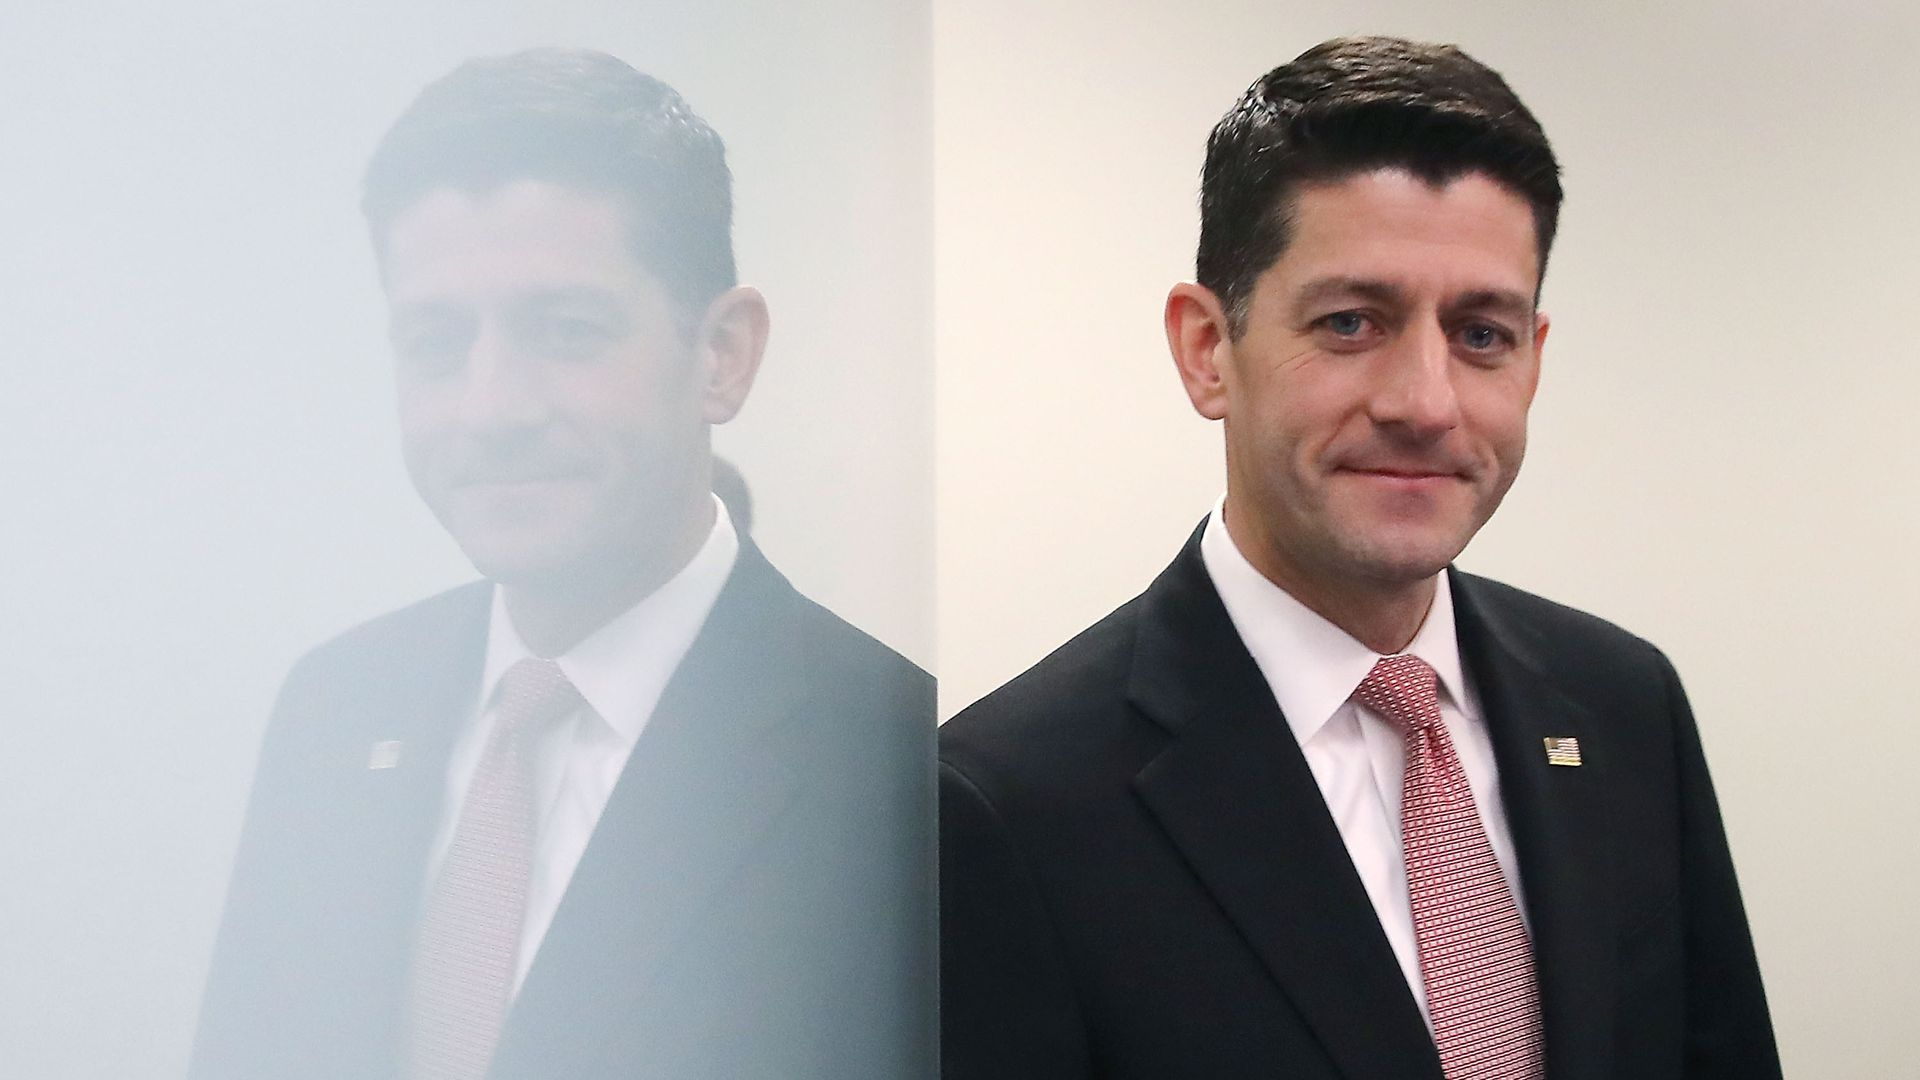 In this image, Paul Ryan leans against a reflective white wall while wearing a suit and red tie.